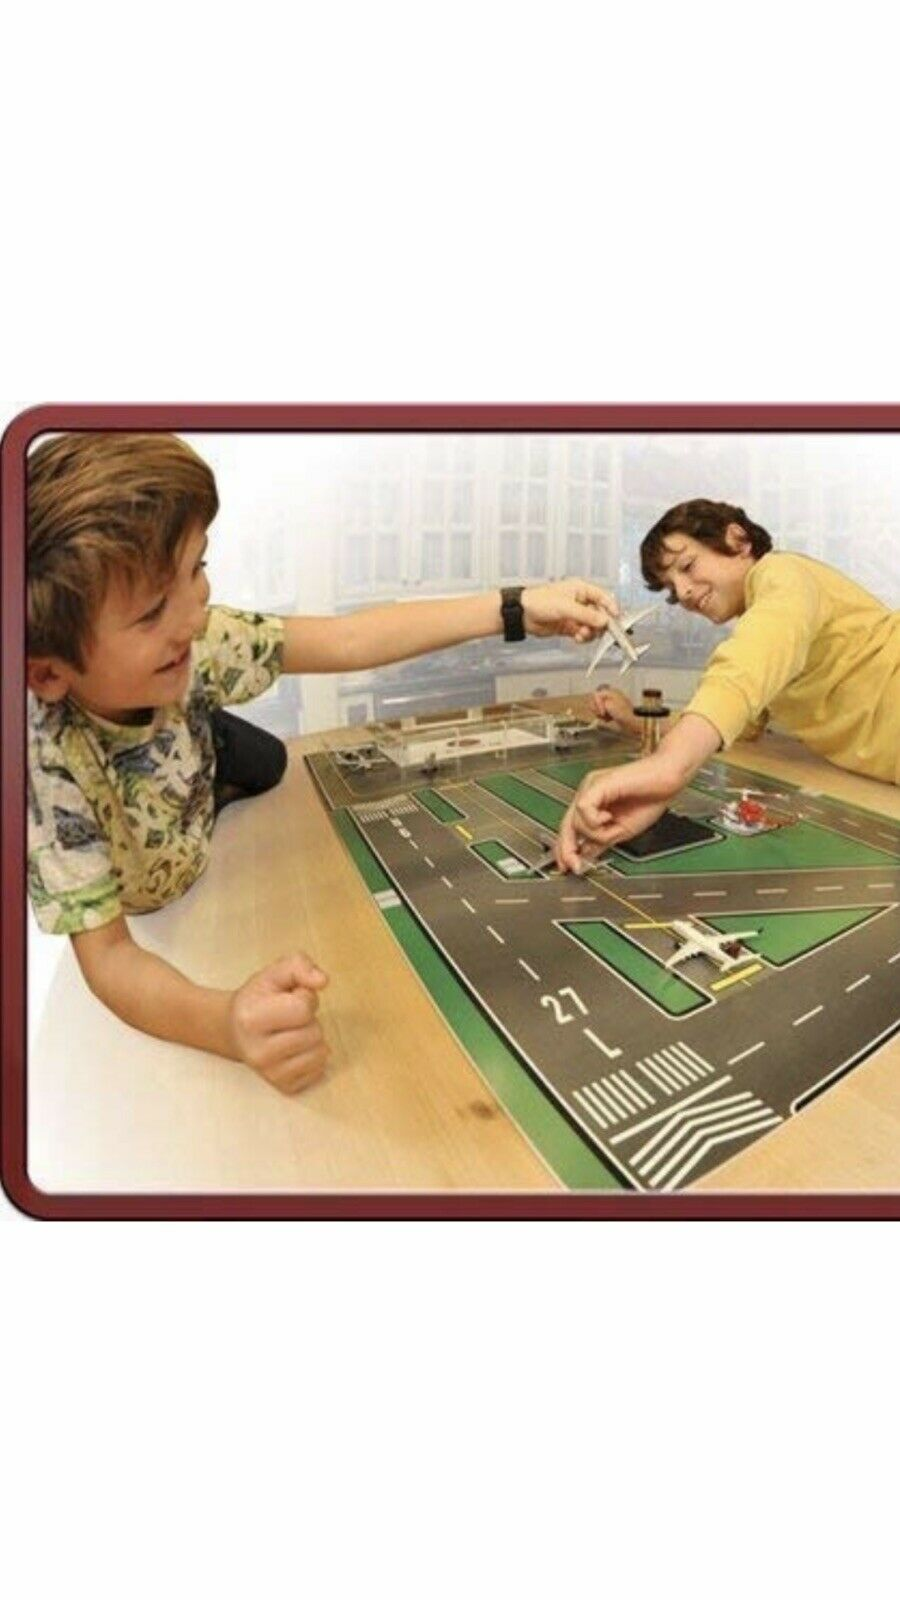 The Red Dog Air's Original Airport Set™ Last 45 Sets  Seconds Only  Foldable